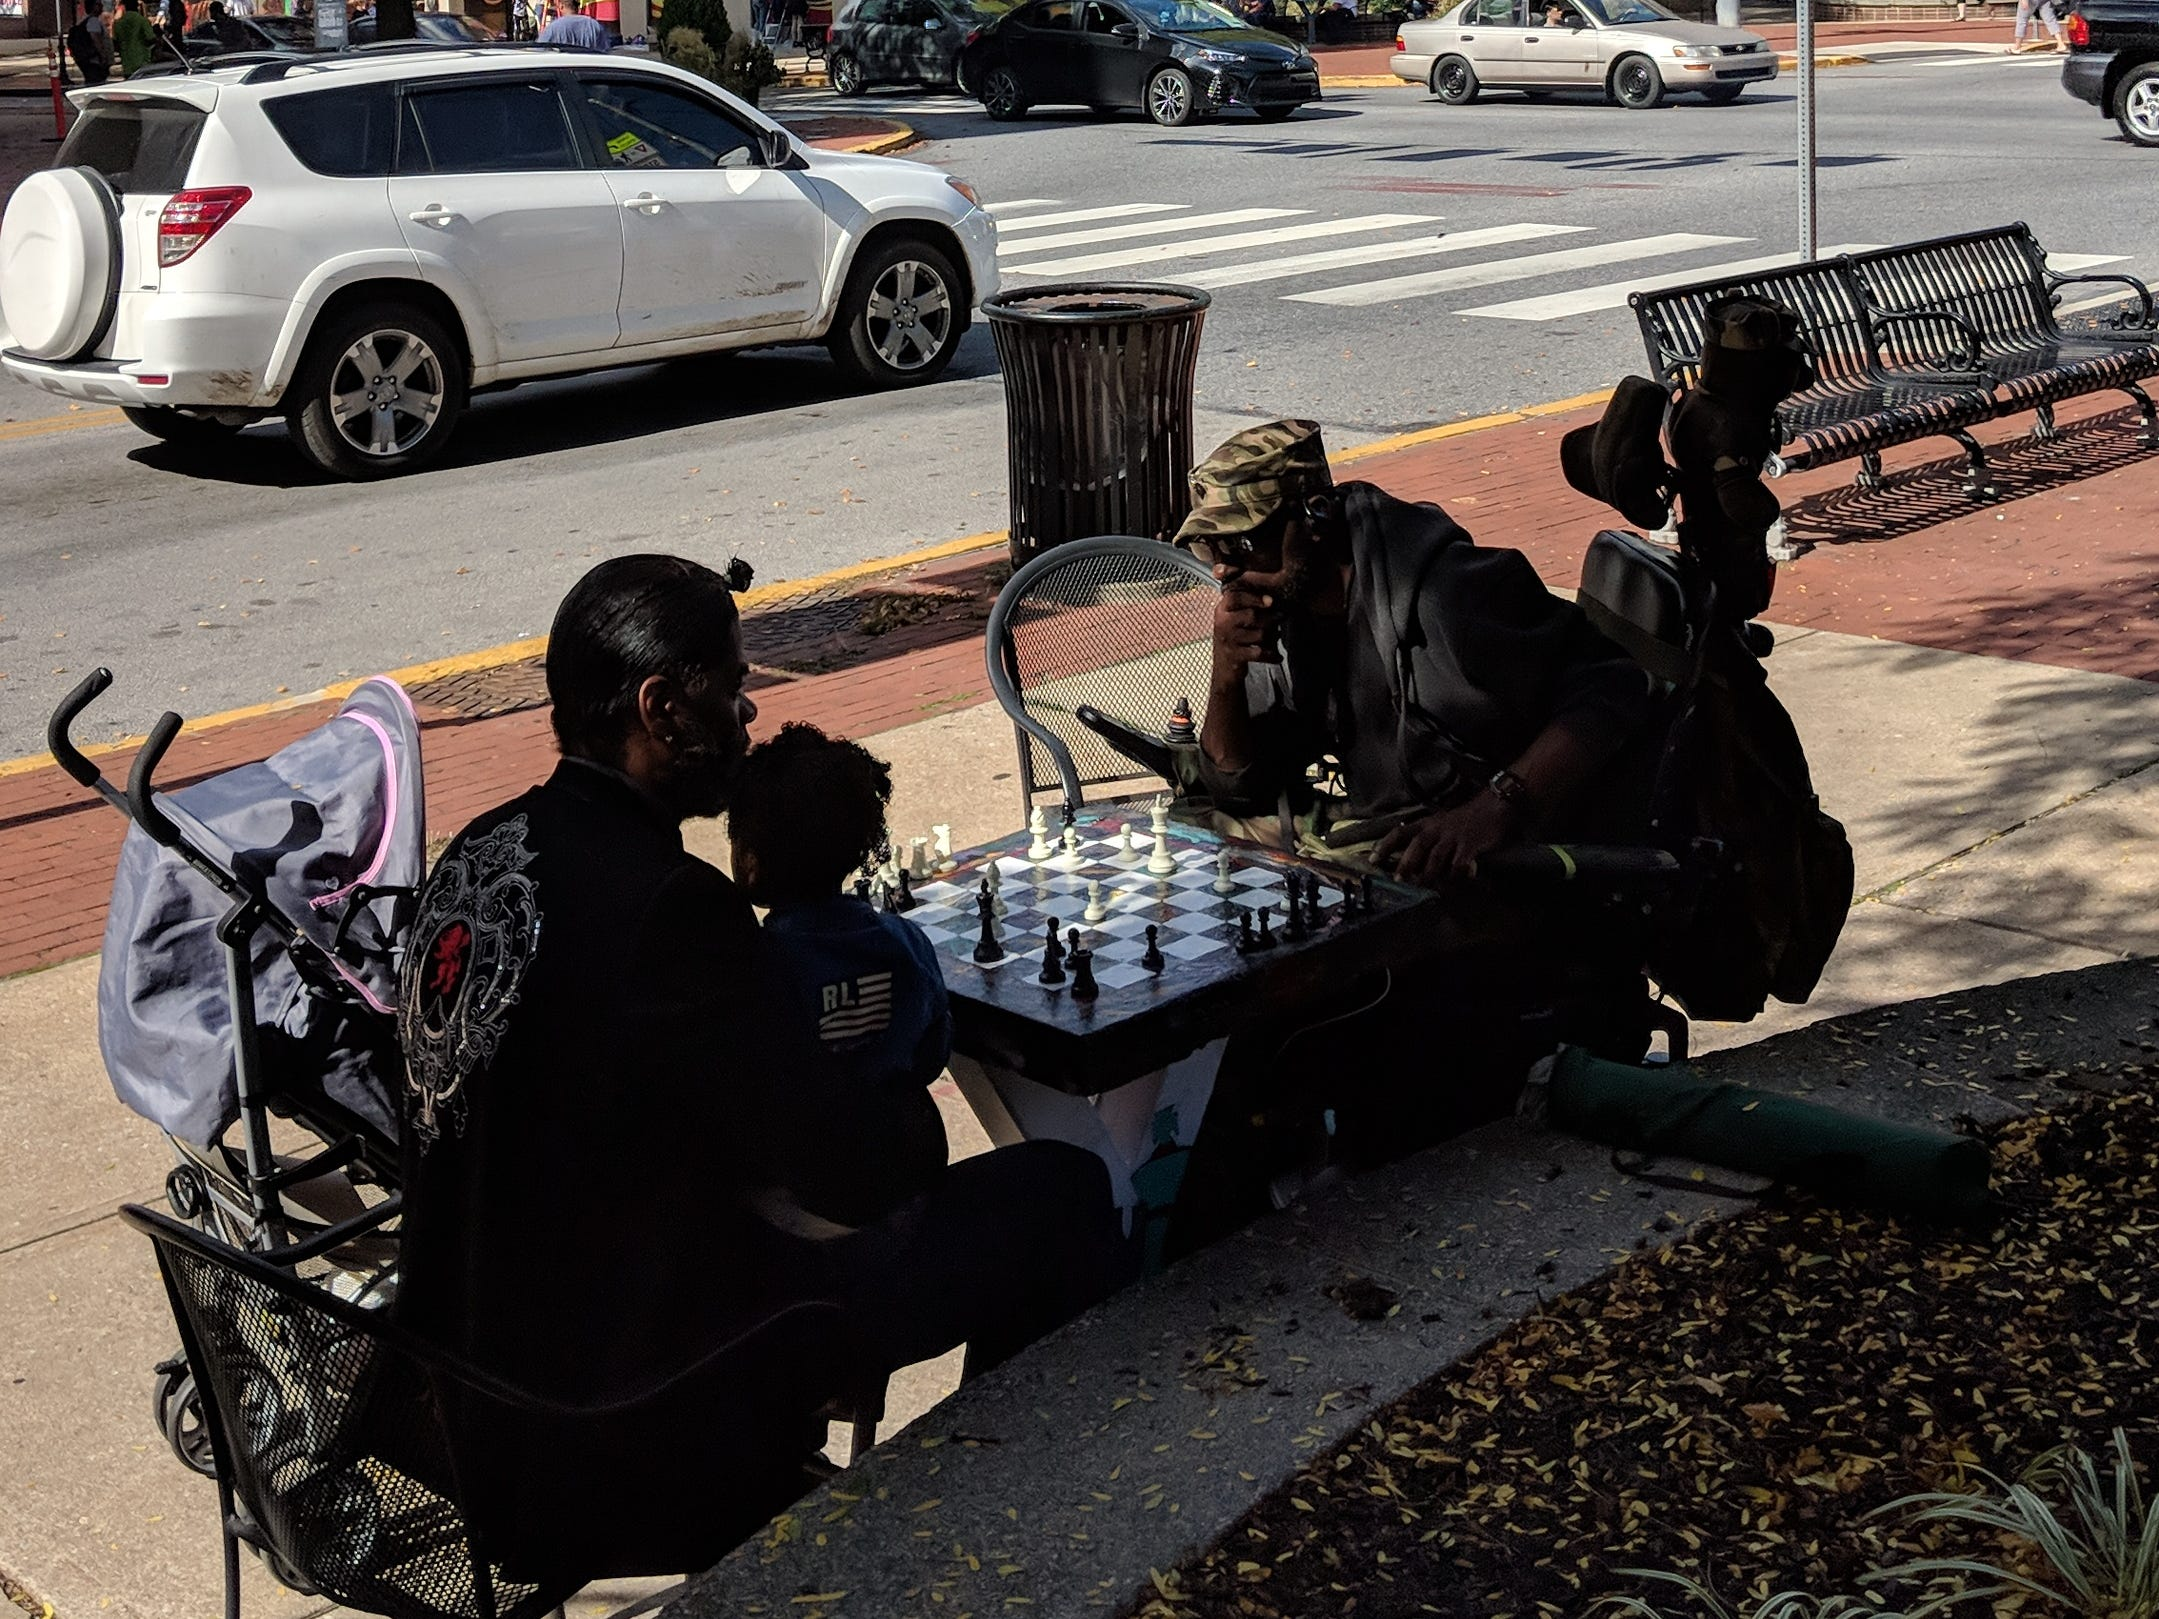 Kevin 'Po' Bertram, left, plays a game of chess with friend Smitty on Continental Square in York on one of the permanently installed chess boards.